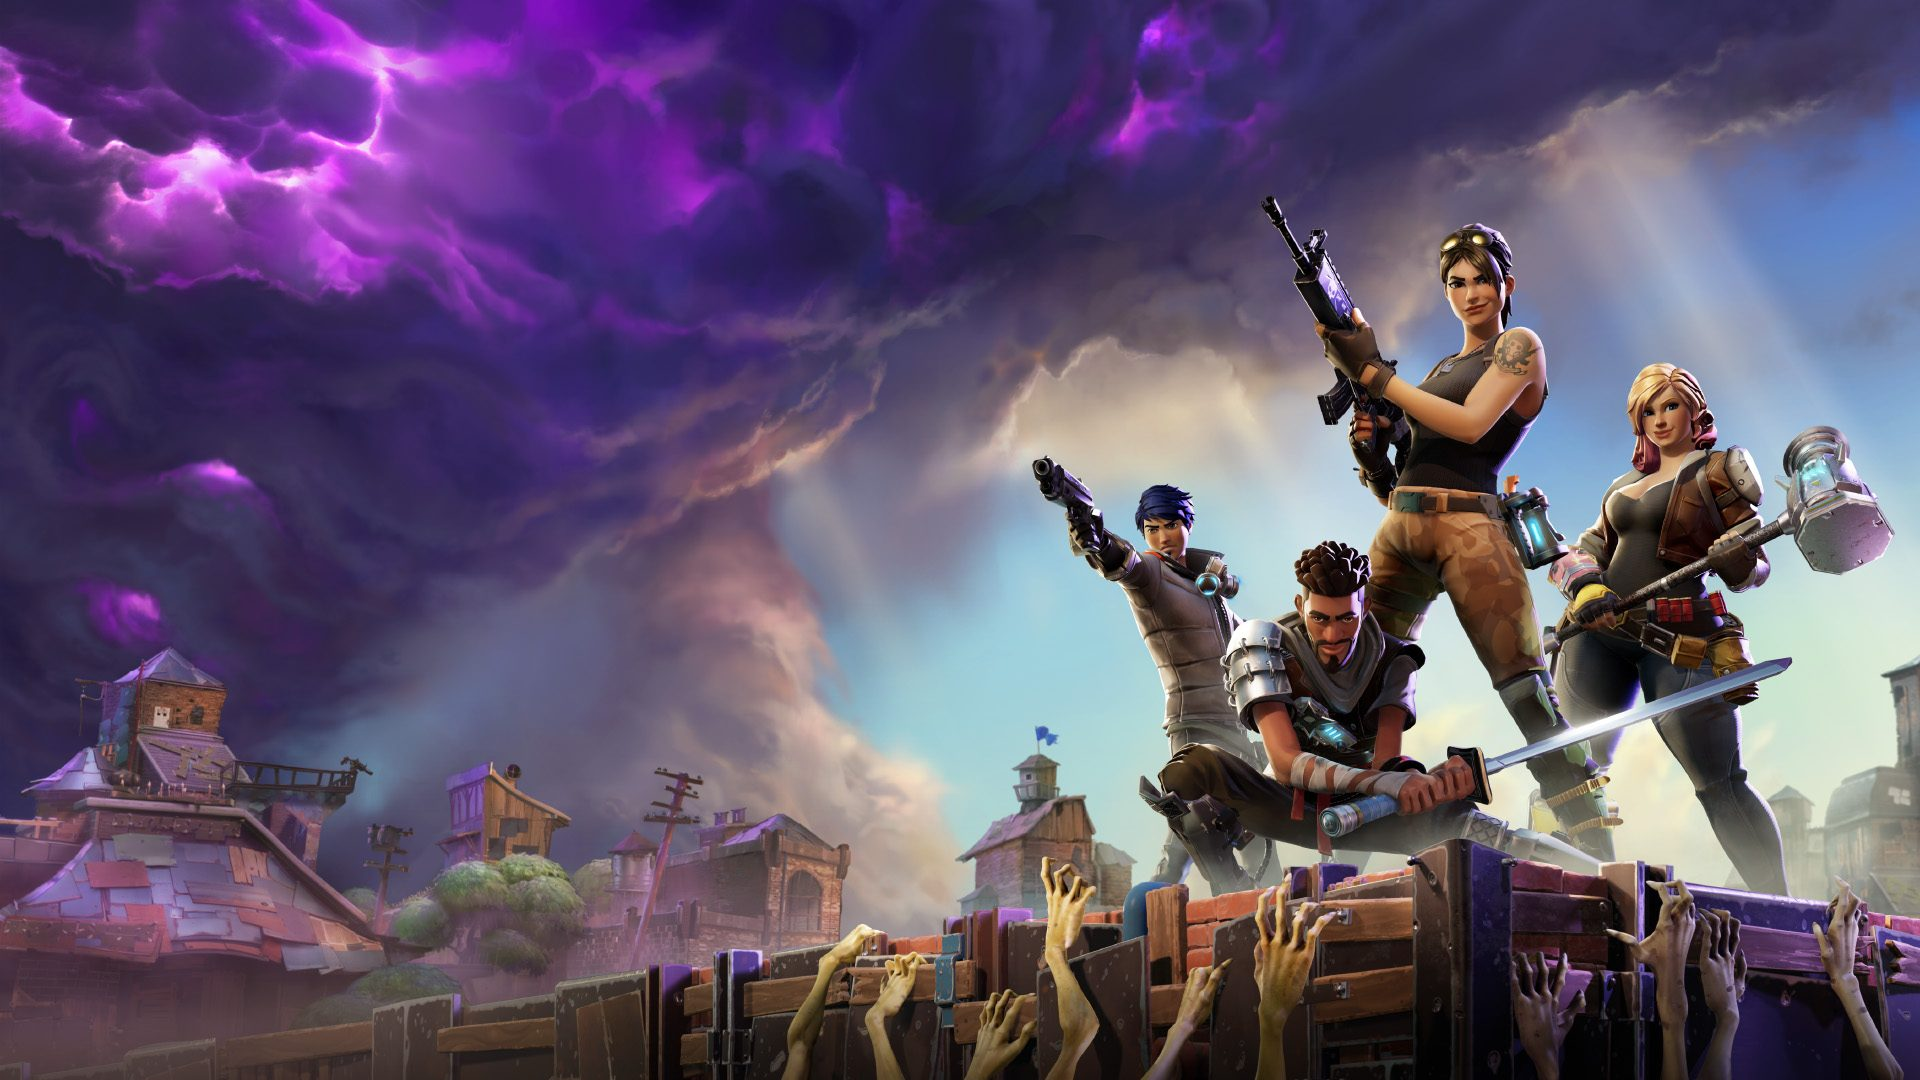 Fortnite Meteors Get Closer; Tilted Towers Leveled by Players